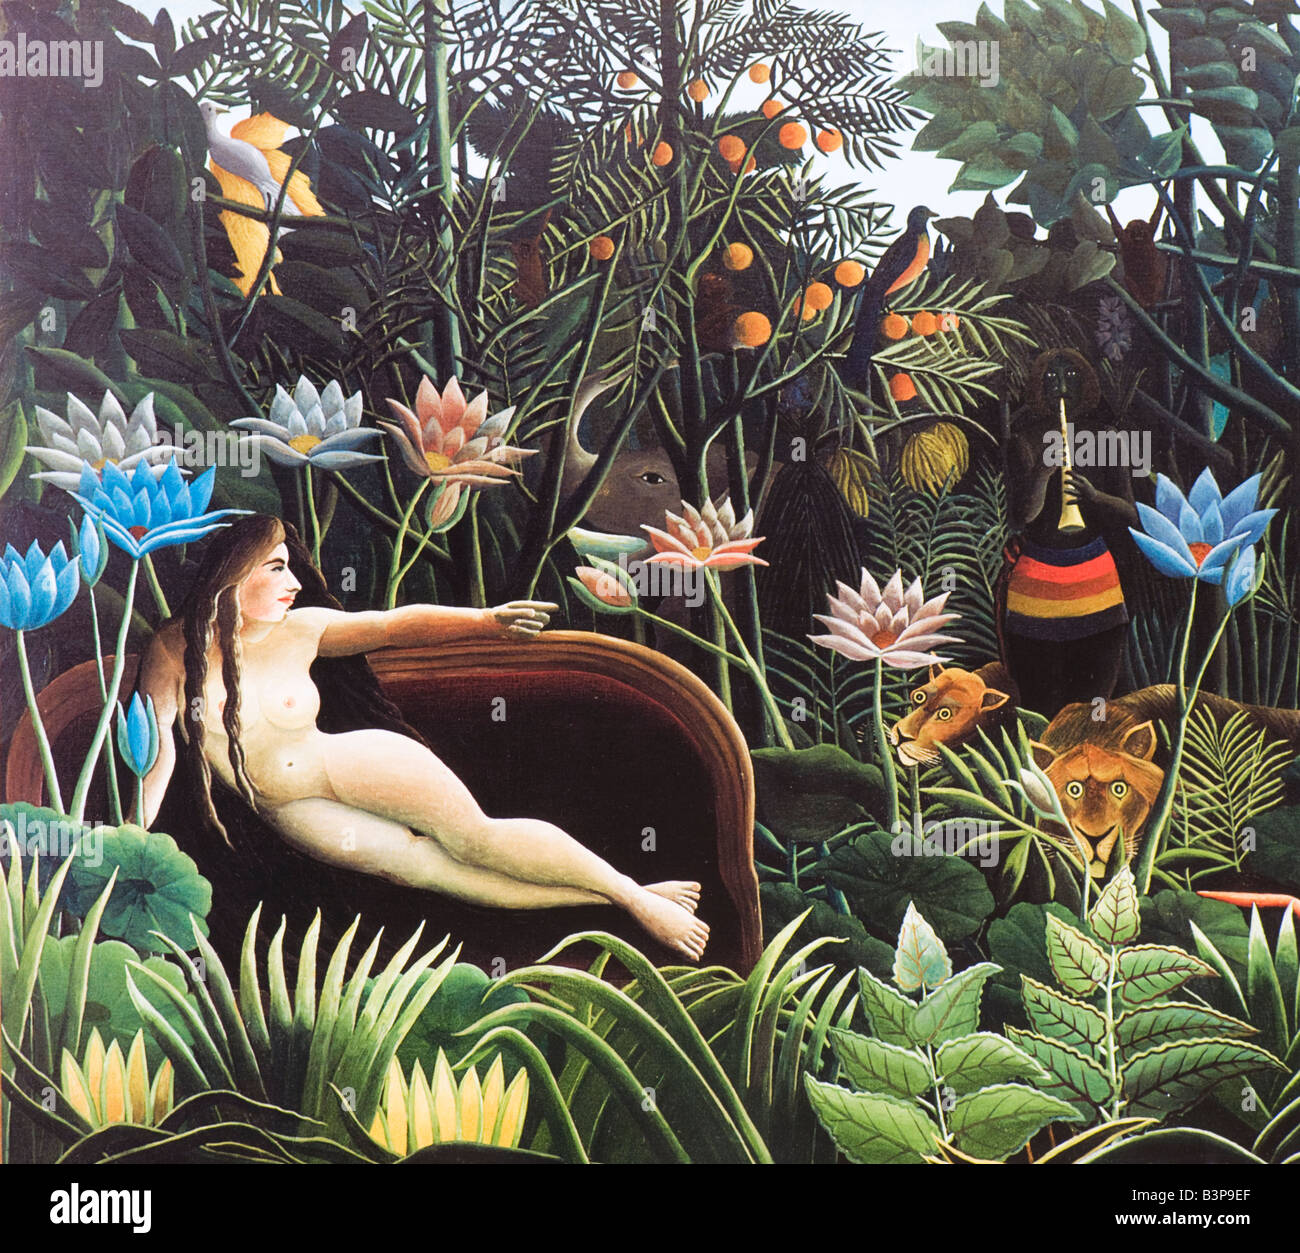 The Dream by Henri Rousseau 1910 - Stock Image